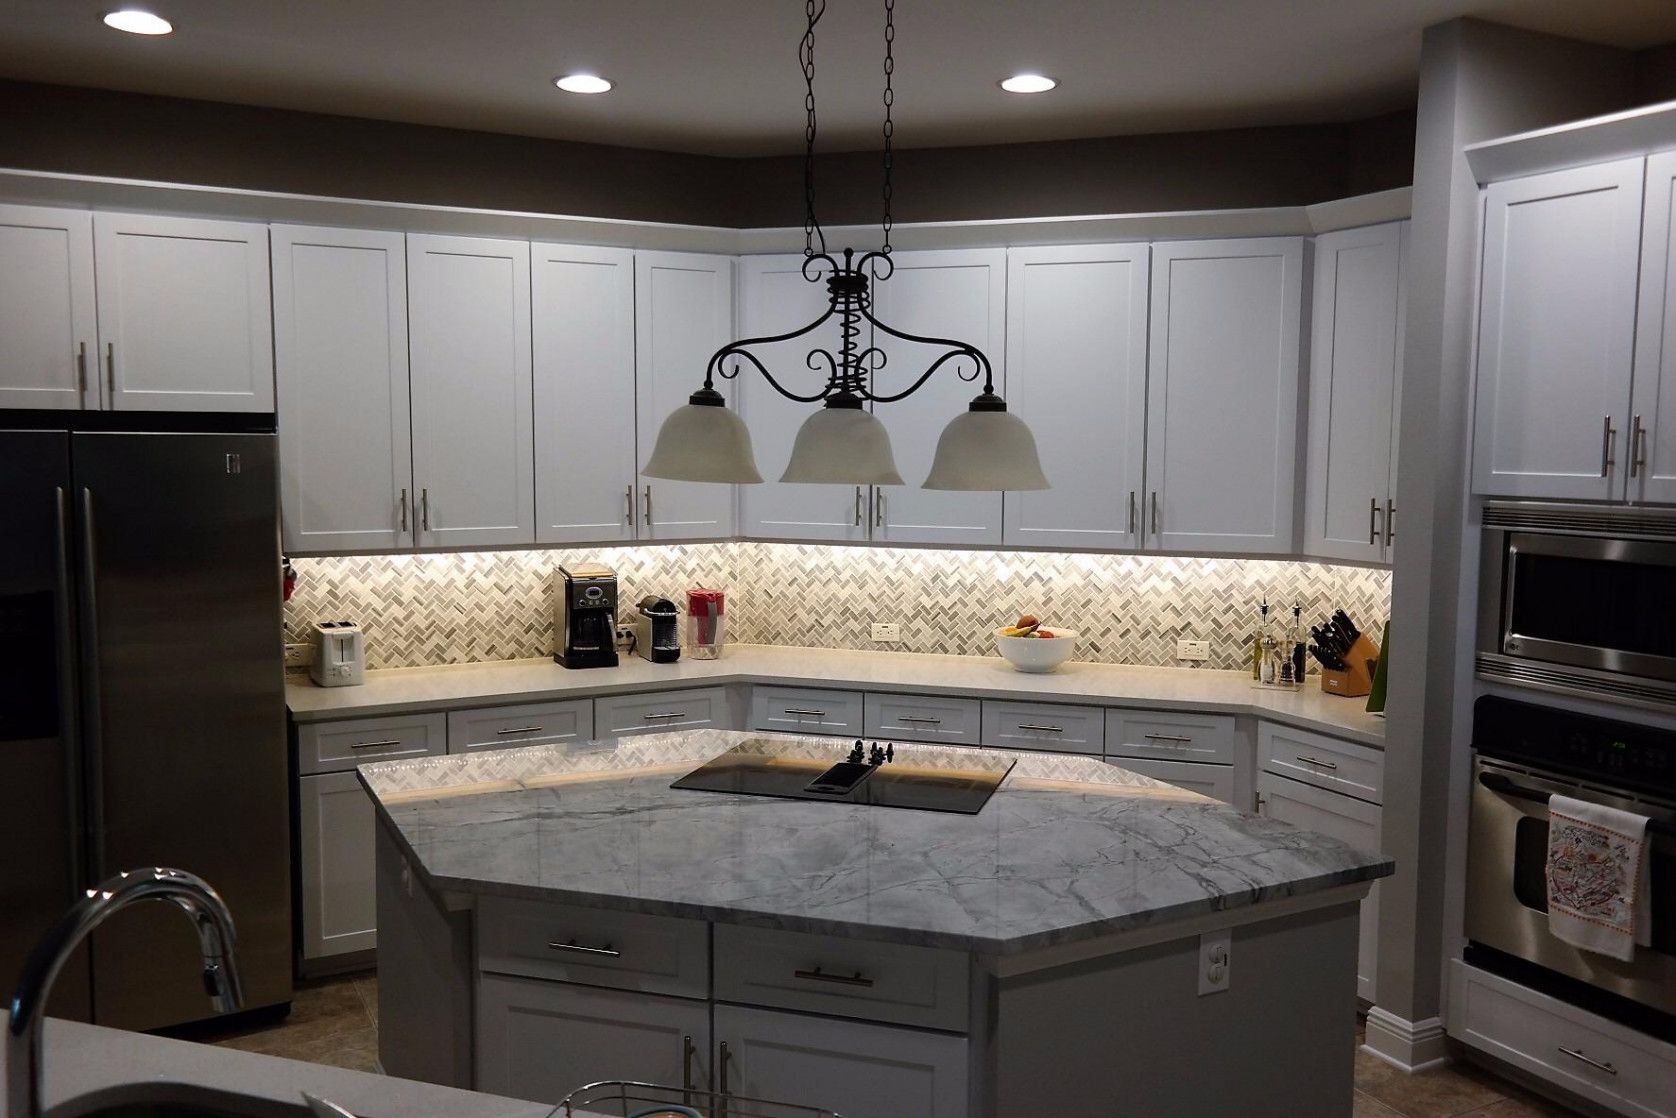 55 Conestoga Kitchen Cabinets Reviews Kitchen Design And Layout